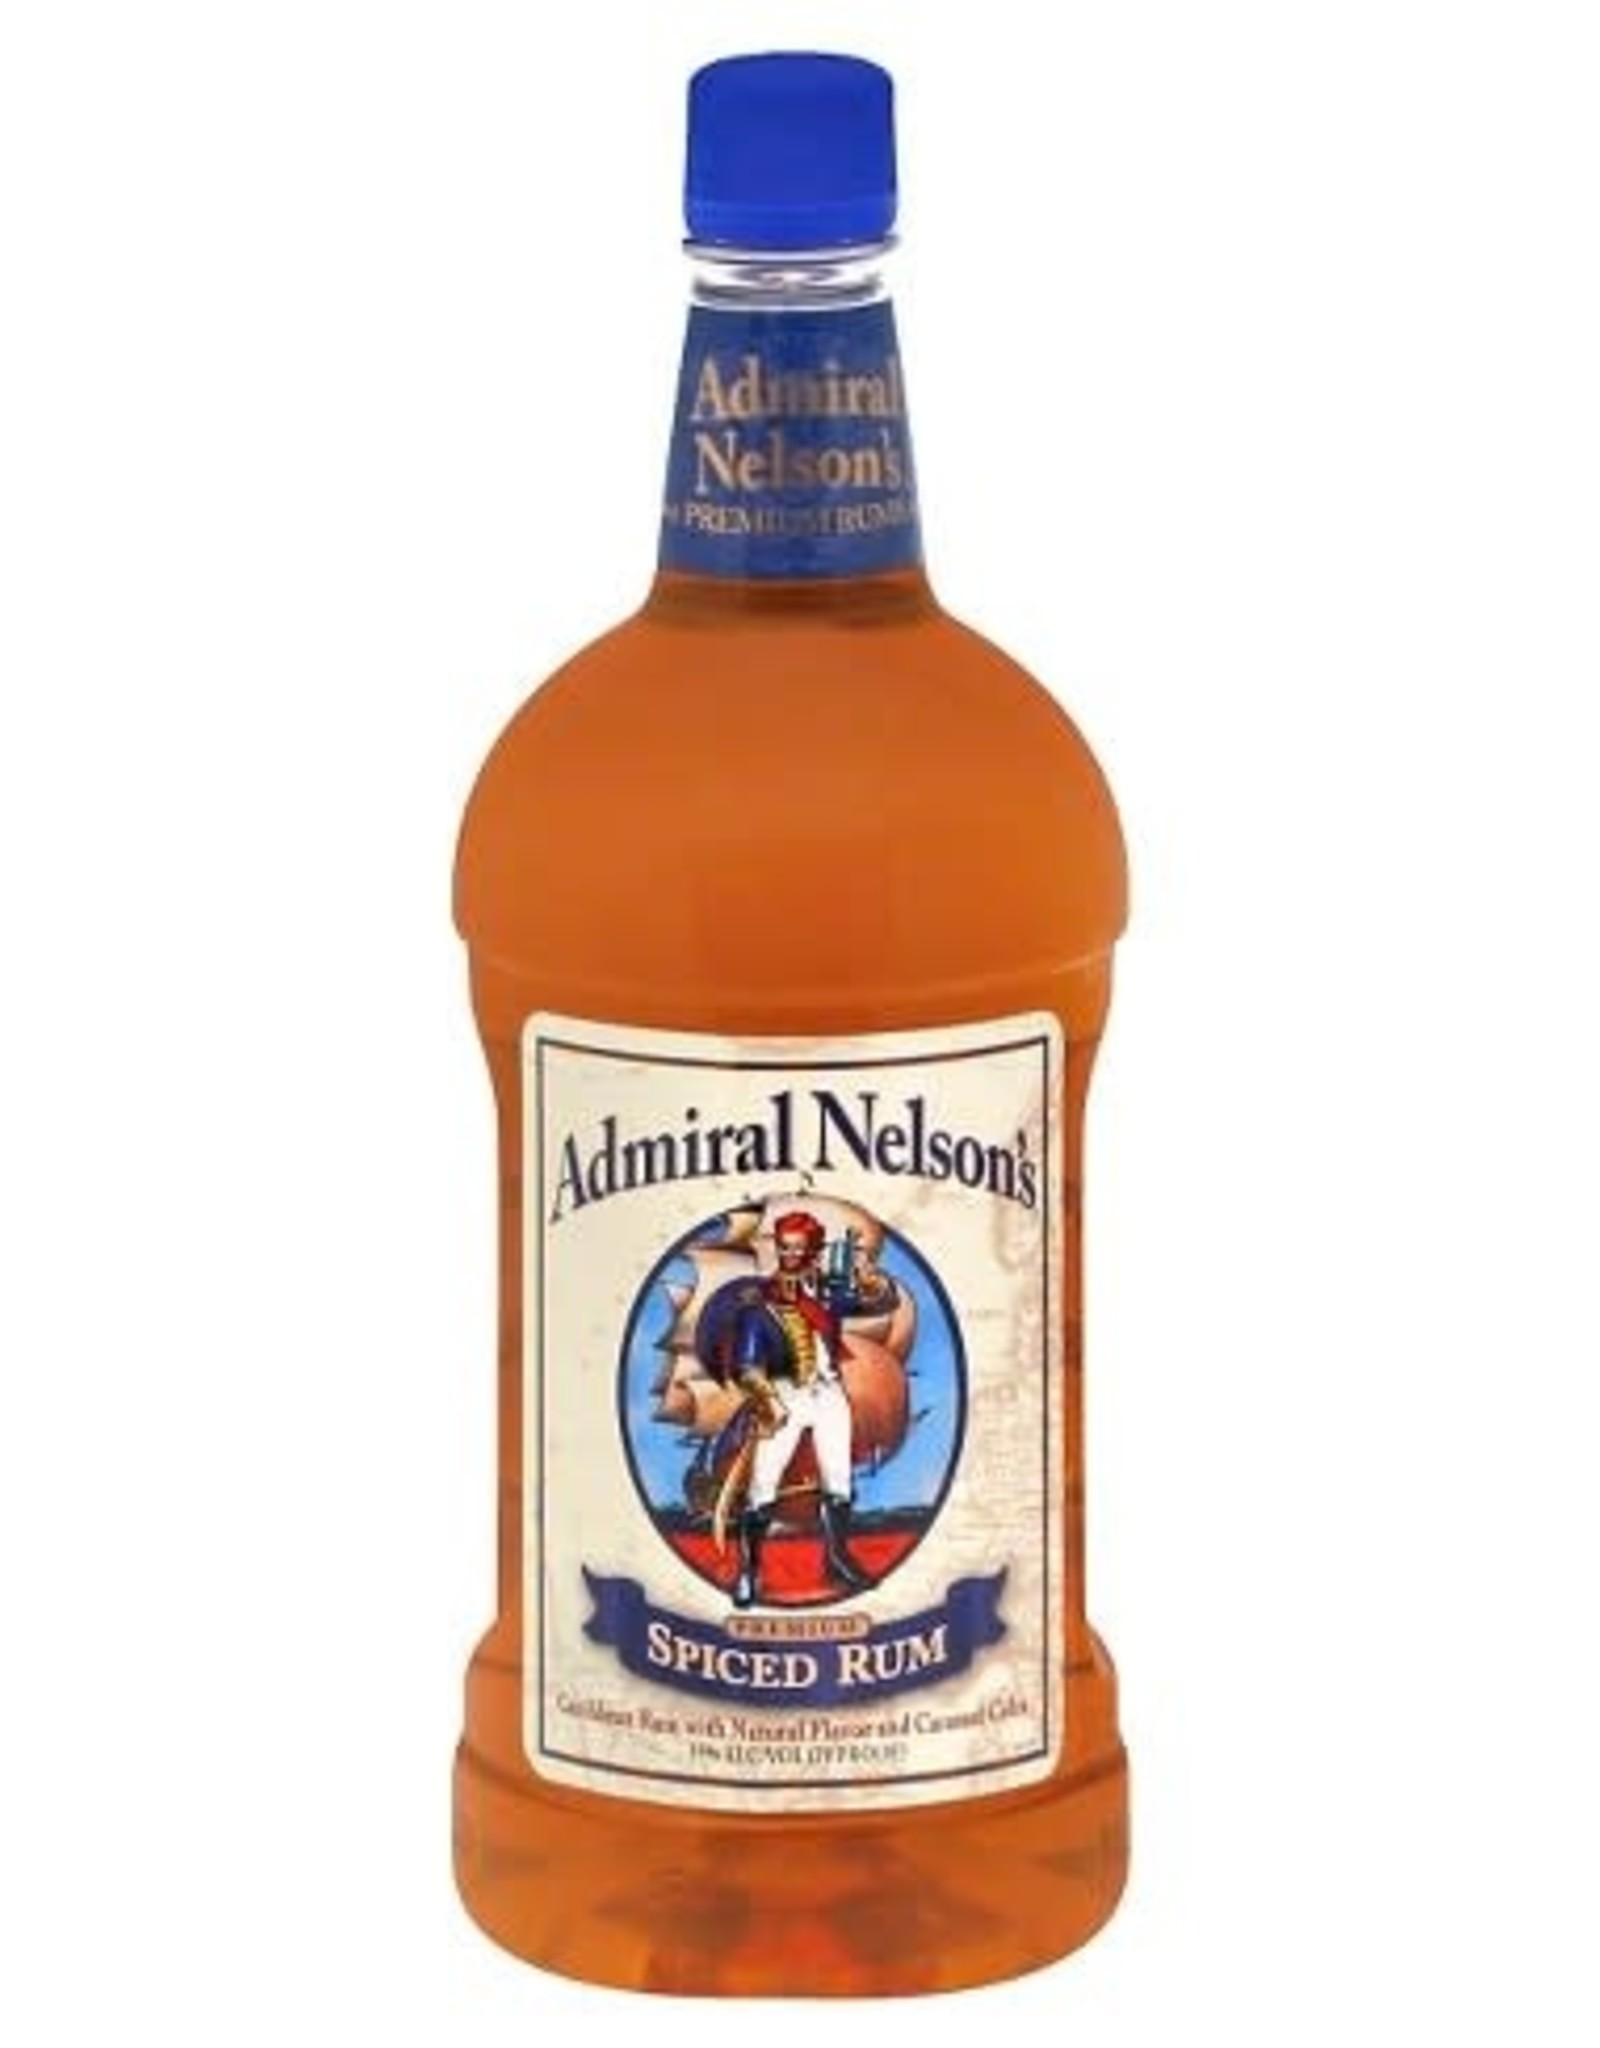 Admiral Nelson's Admiral Nelson's Spiced Rum 1.75L